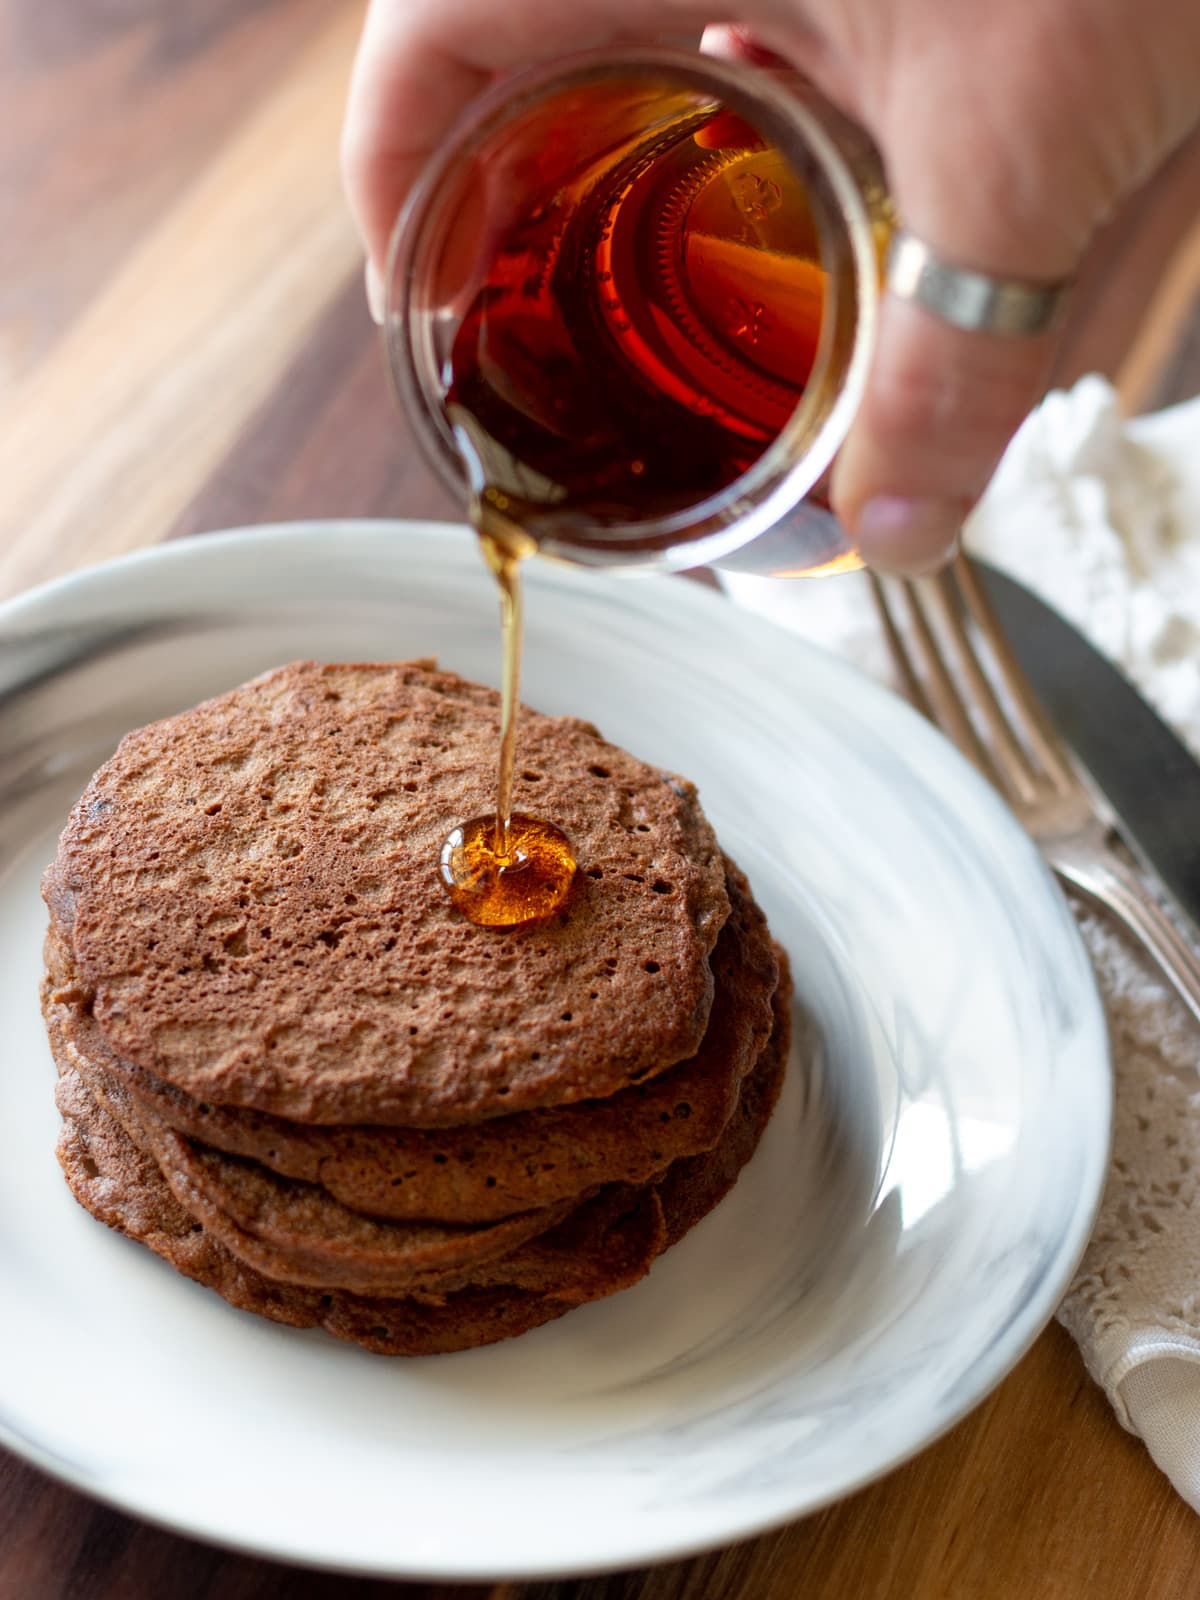 These delicious Mocha Pancakes are perfect for the coffee lovers who like a little mocha in the morning.